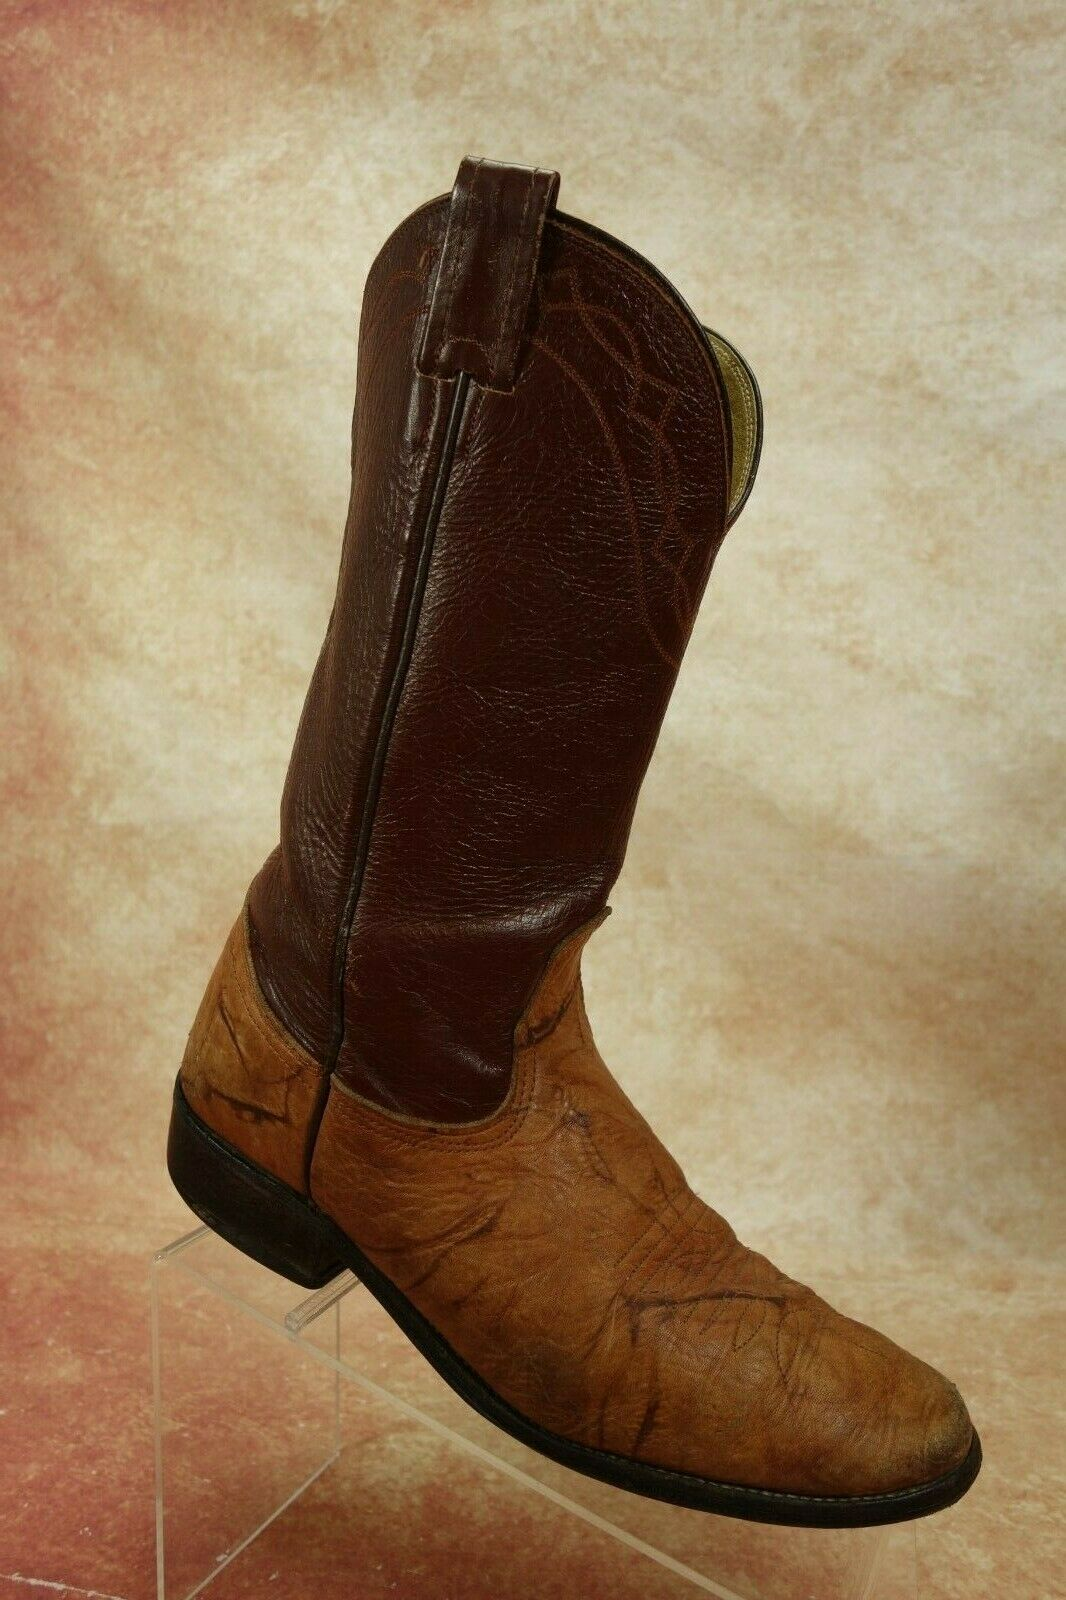 b78fc718336 VTG Nocona Red Tan Leather Western Ropers Cowboy Boots Mens Size 8D ...